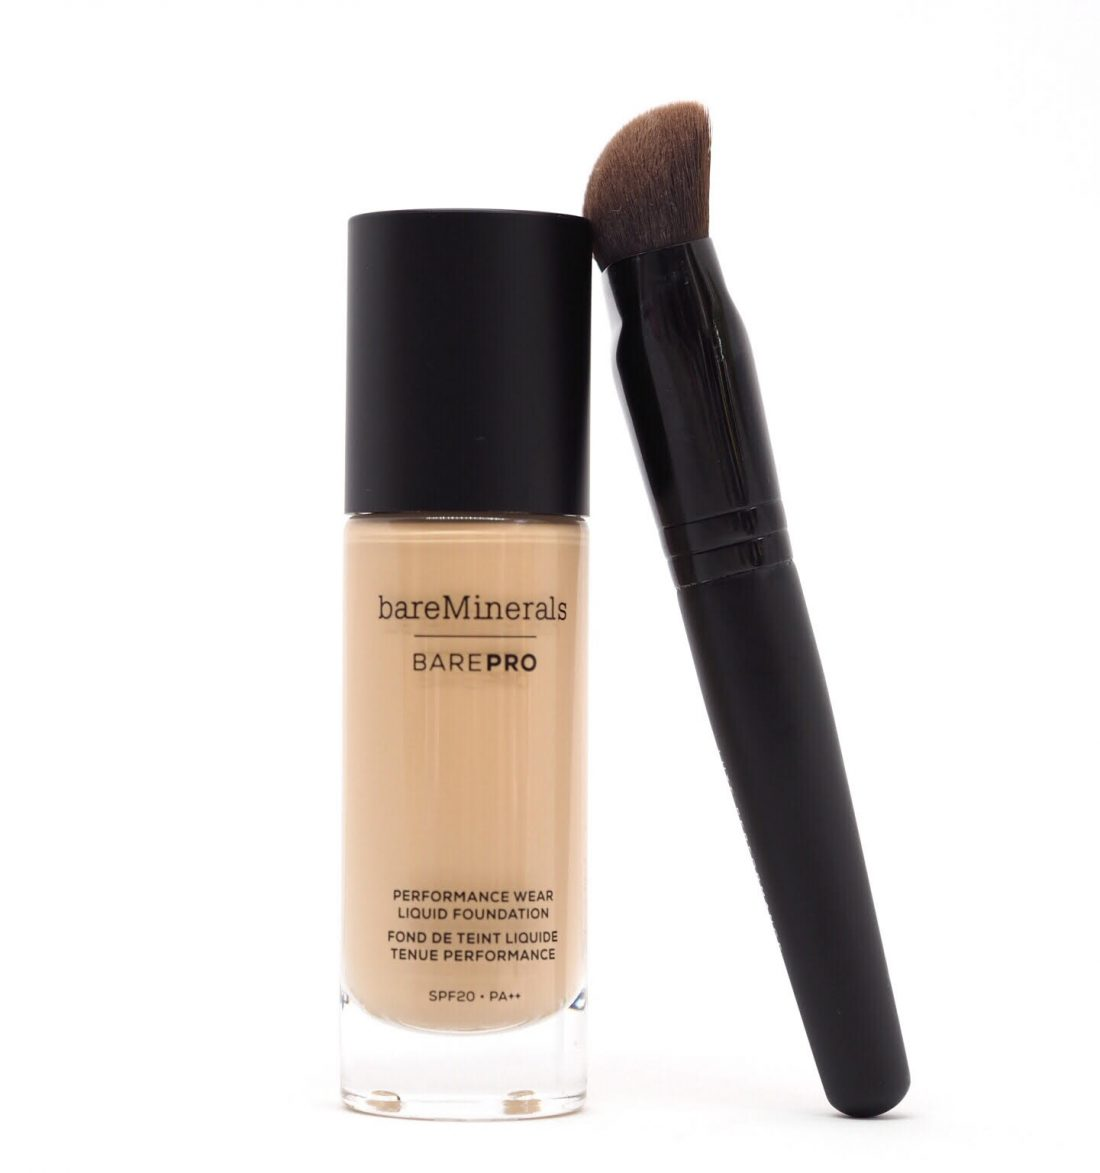 bare minerals foundation brush review